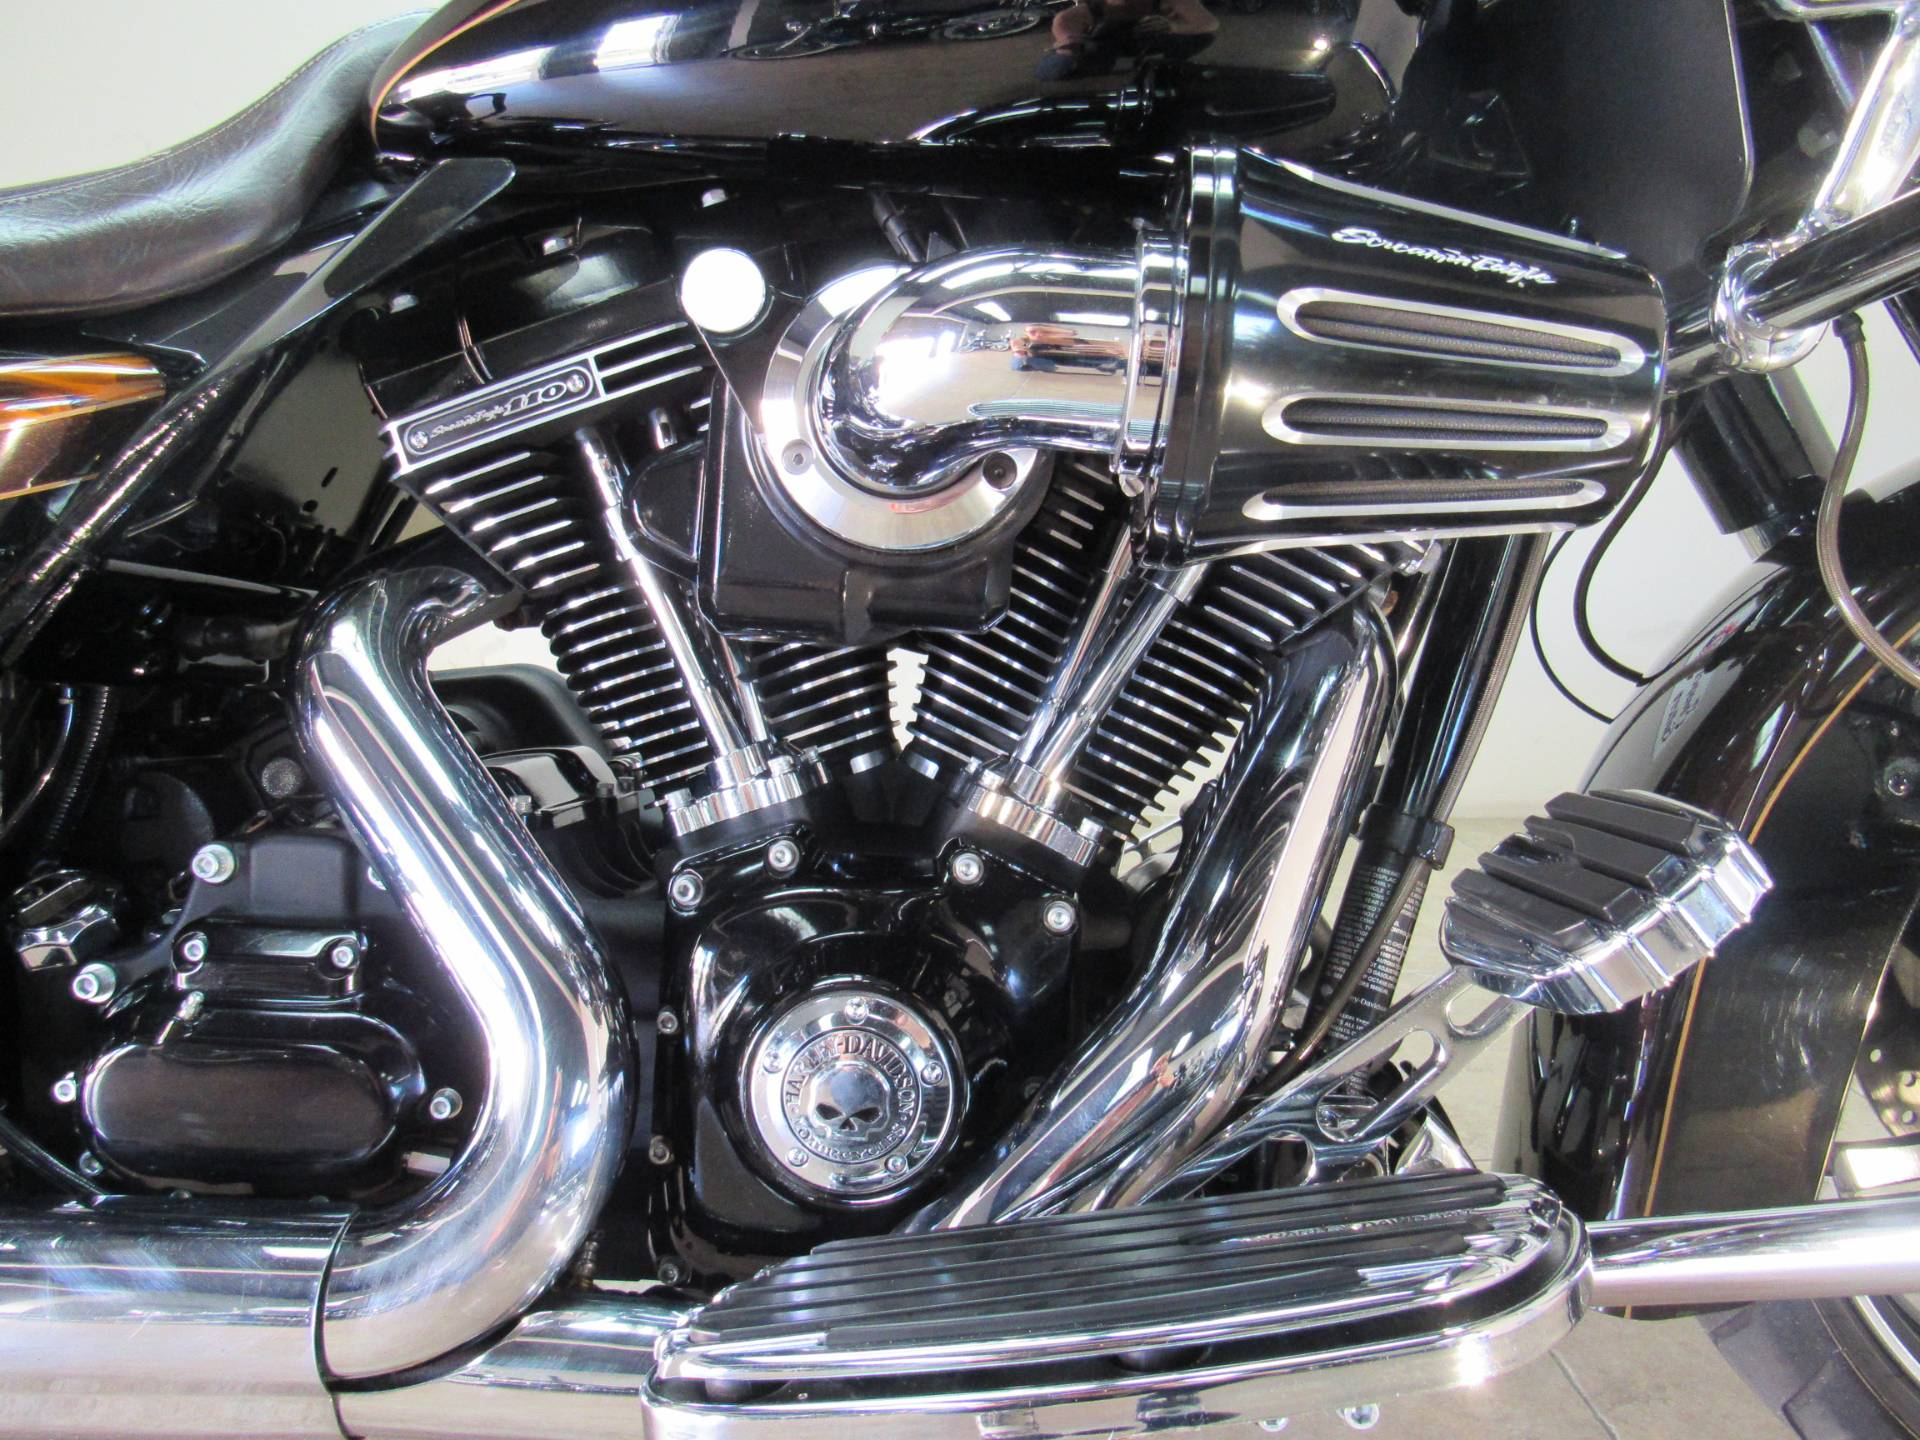 2012 Harley-Davidson CVO™ Road Glide® Custom in Temecula, California - Photo 14